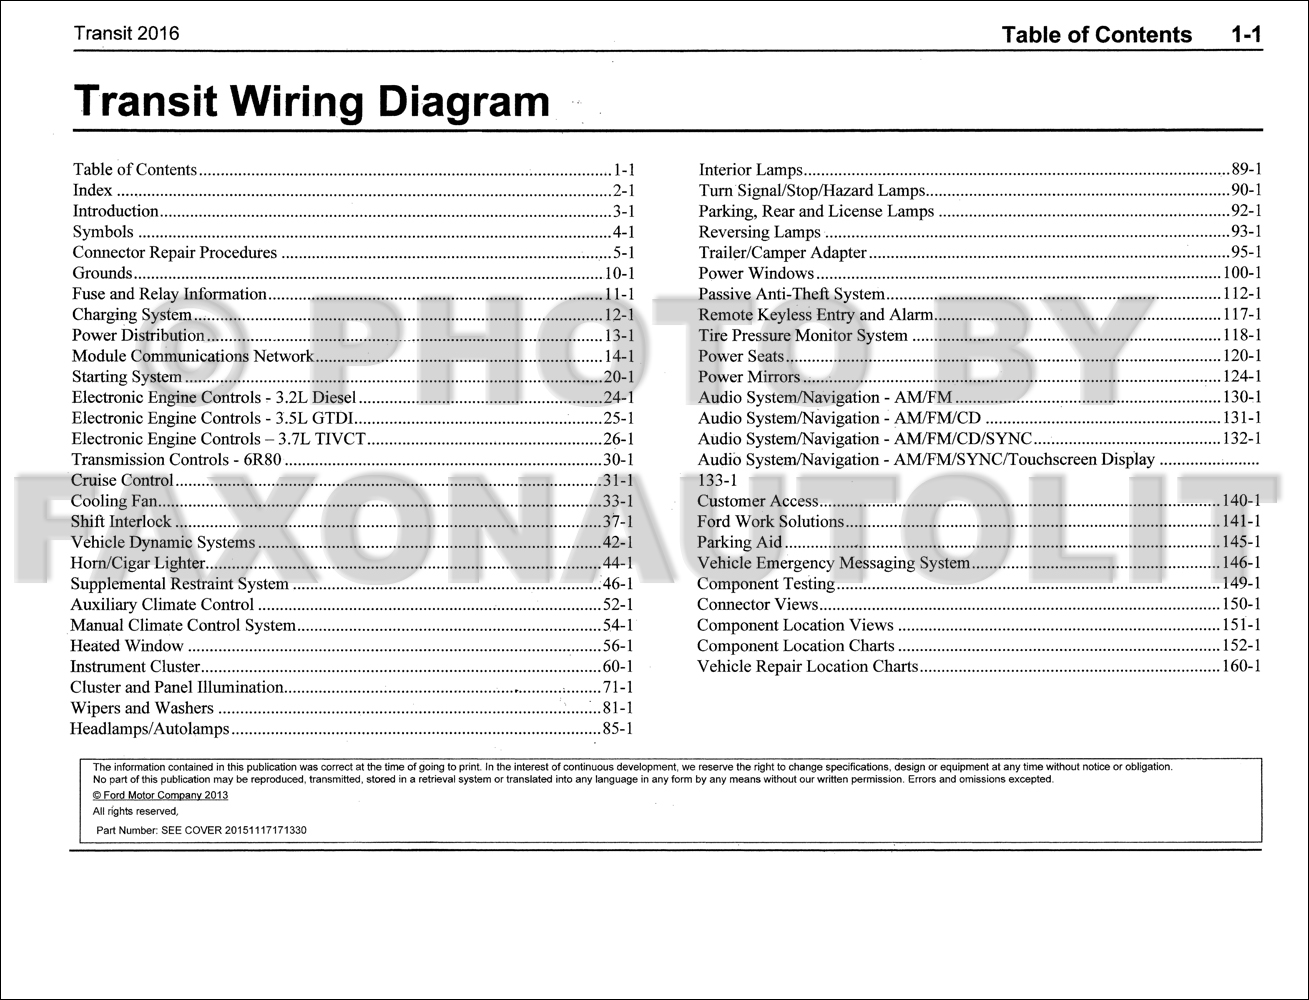 transit connect wiring schematic 2012 transit connect wiring 2010 Ford Transit Connect Fuse Box Diagram 2016 ford transit wiring diagram manual original transit connect wiring schematic 2016 ford transit wiring diagram 2010 ford transit connect fuse box diagram